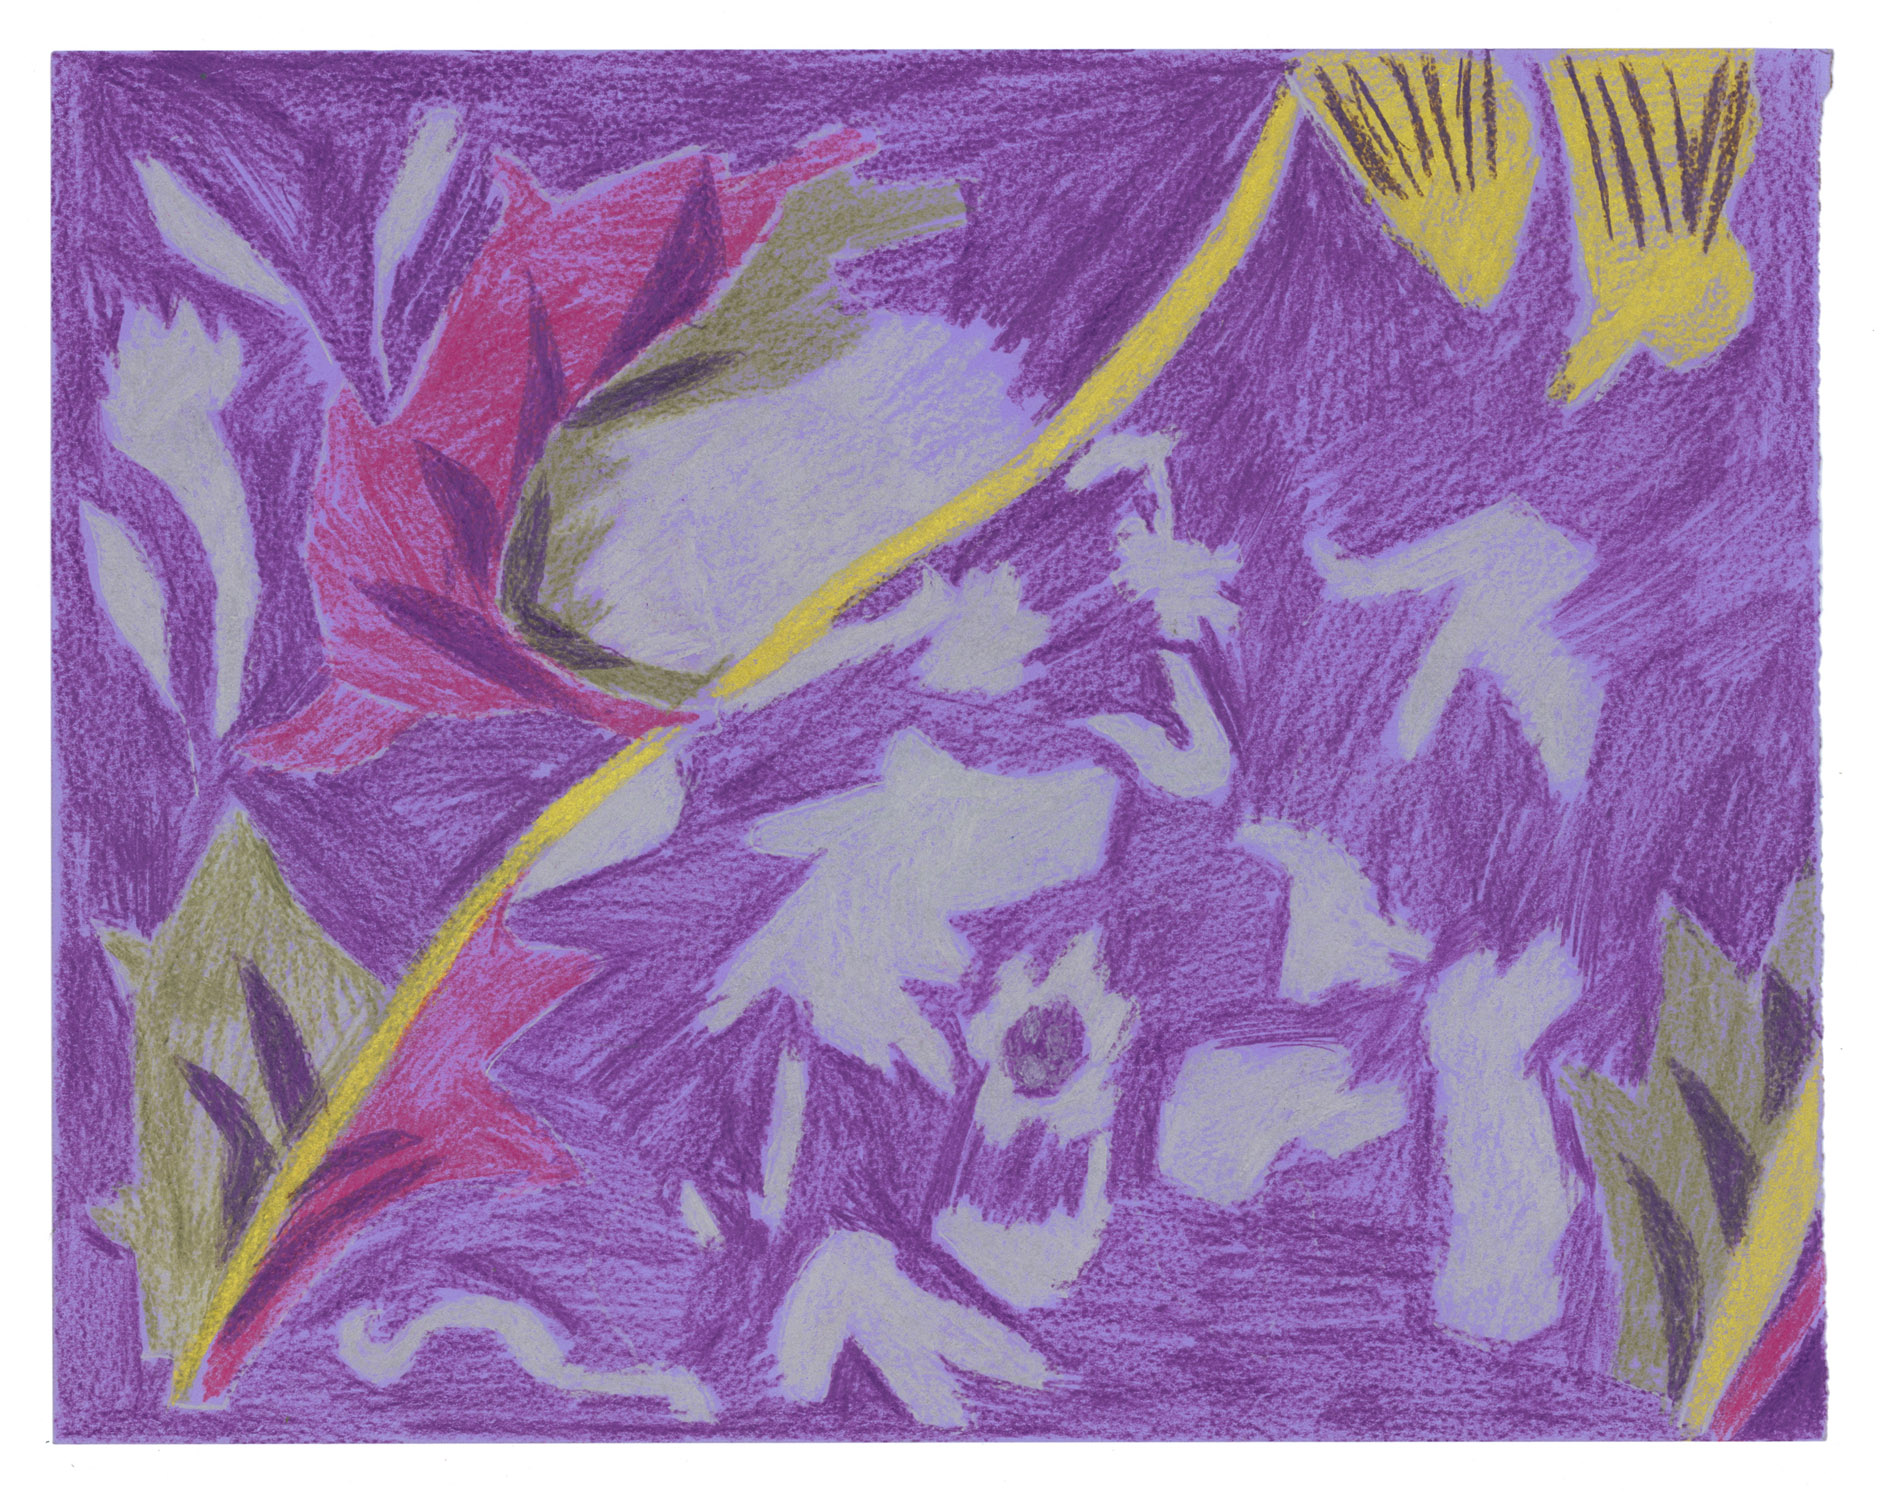 Mawuena Kattah, Purple Fabric, 2014